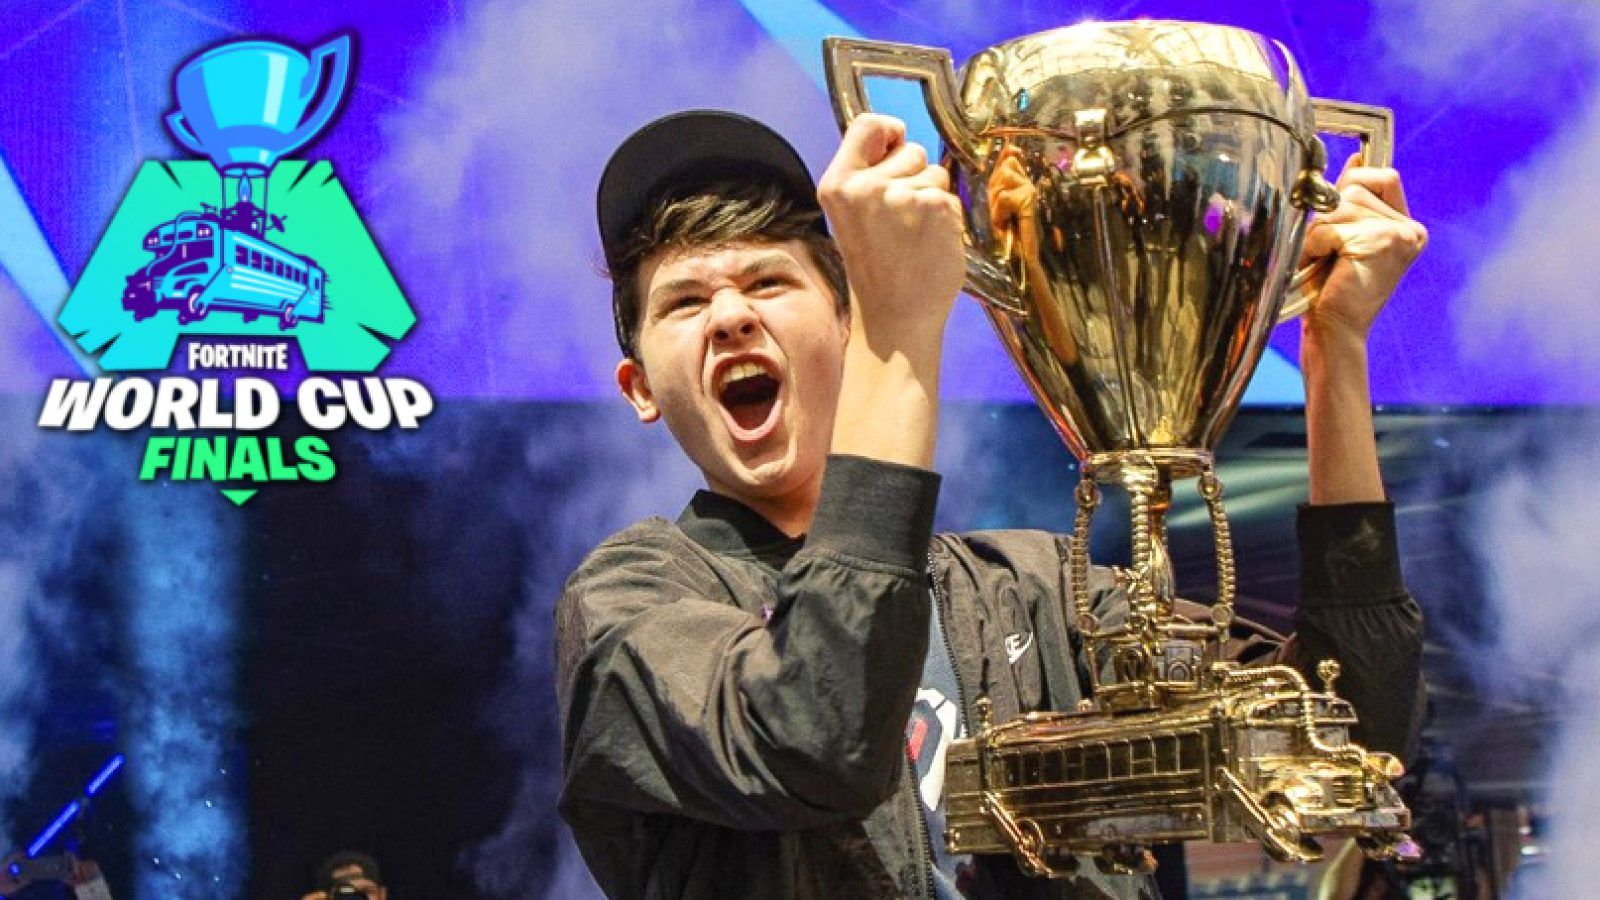 A 16 Year Old Just Won 1 1 Billion Naira For What Playing Video Games Https Www Zikoko Com Pop Bugha Fortnite World World Cup Fortnite World Cup Champions